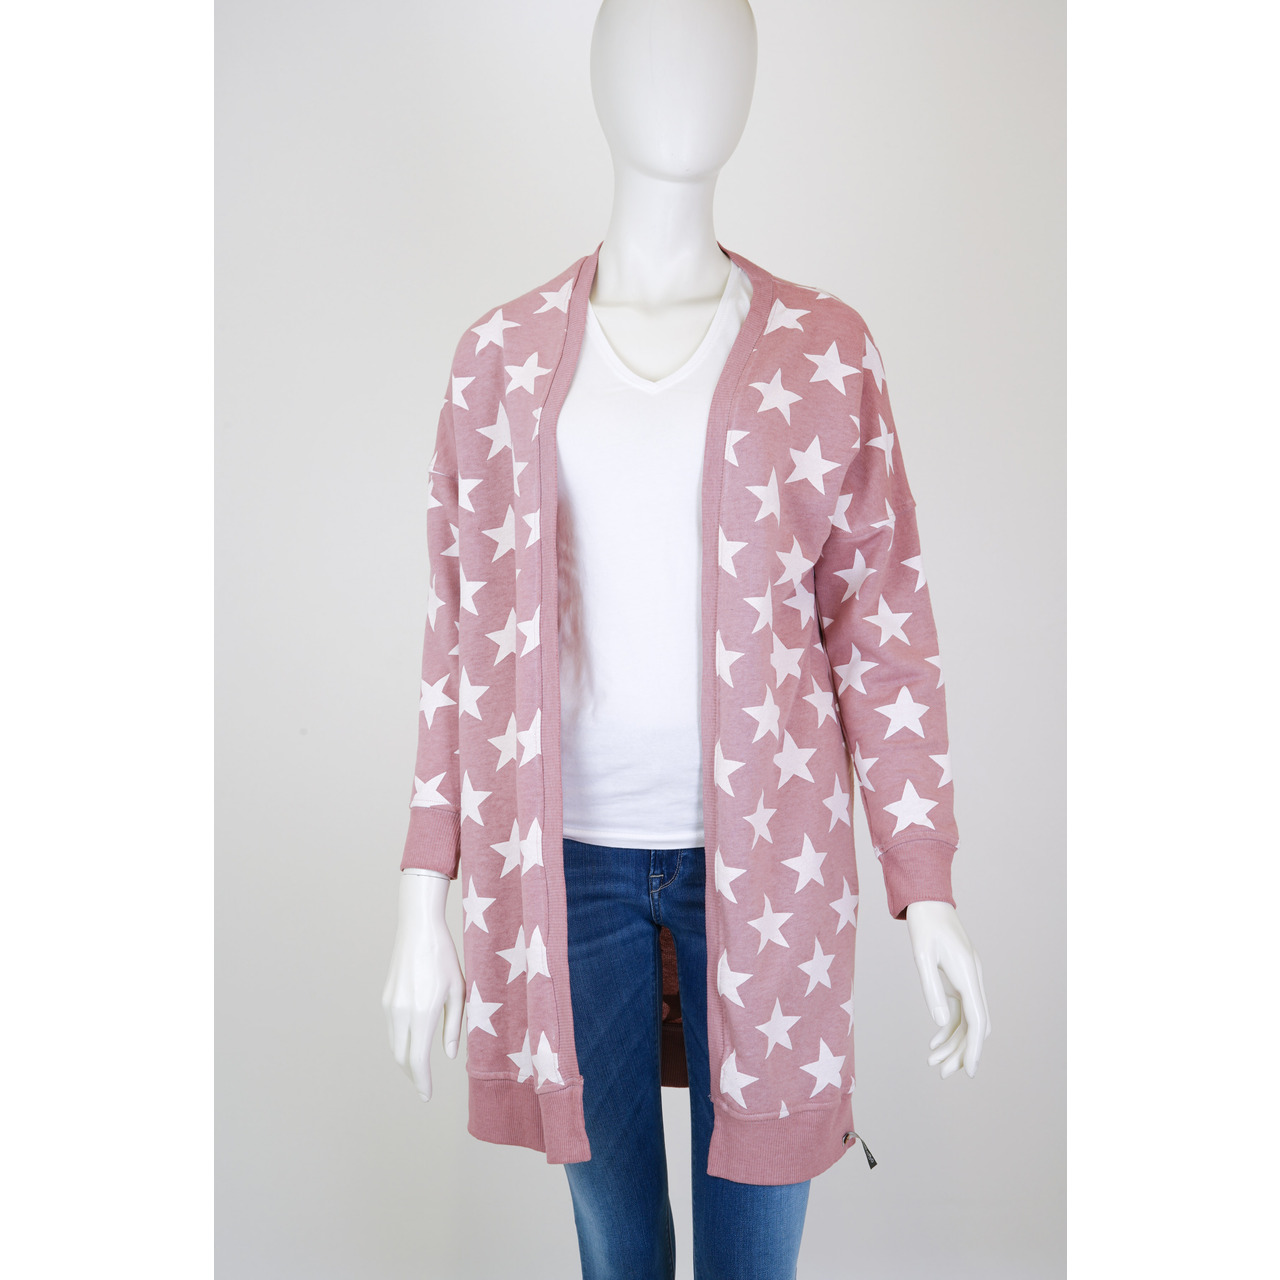 COTTONCANDY - CARDIGAN